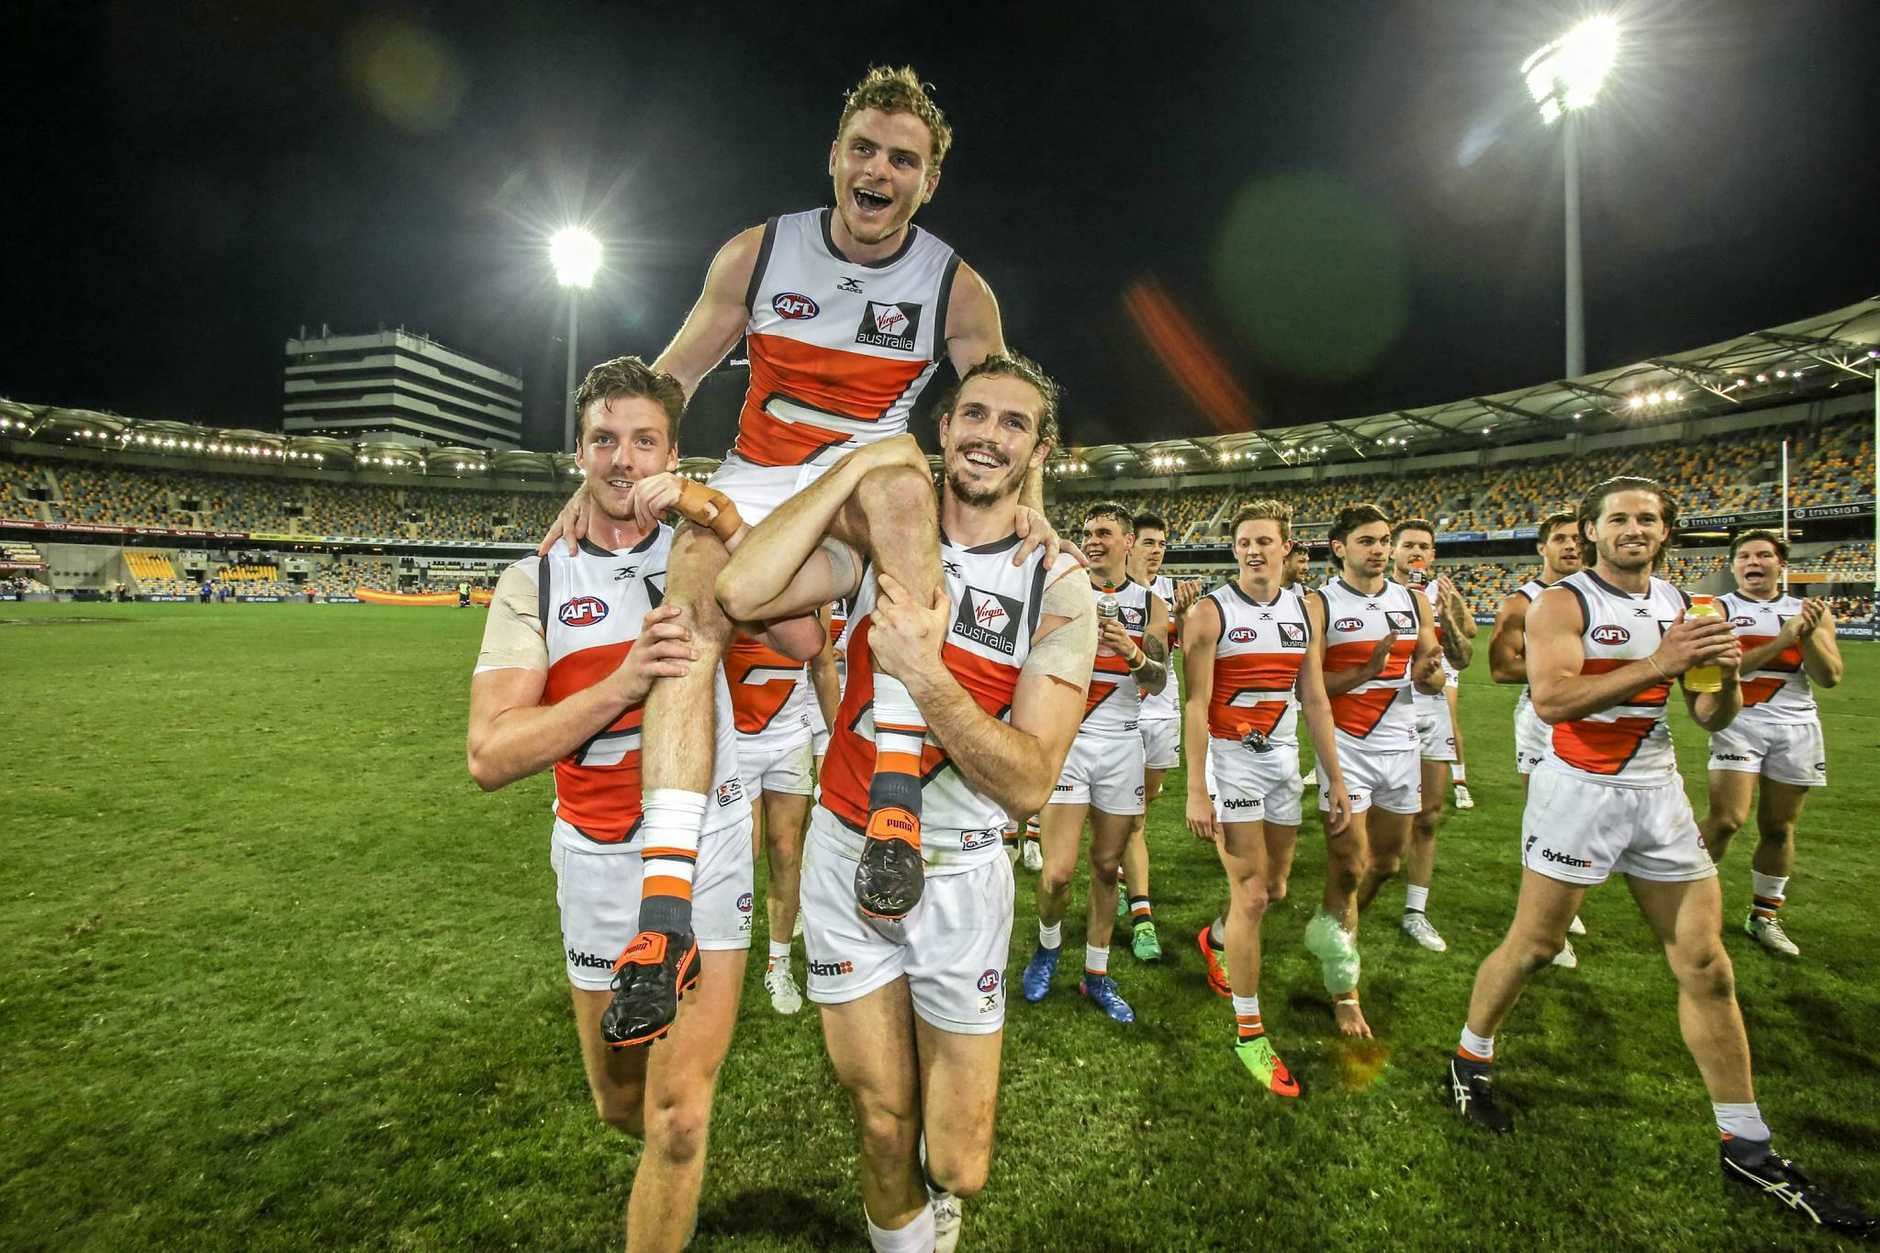 Heath Shaw of the Giants celebrates his 250th game during the Round 14 AFL match between the Brisbane Lions and the Greater Western Sydney (GWS) Giants at the Gabba in Brisbane, Saturday, June 24, 2017. (AAP Image/Glenn Hunt) NO ARCHIVING, EDITORIAL USE ONLY